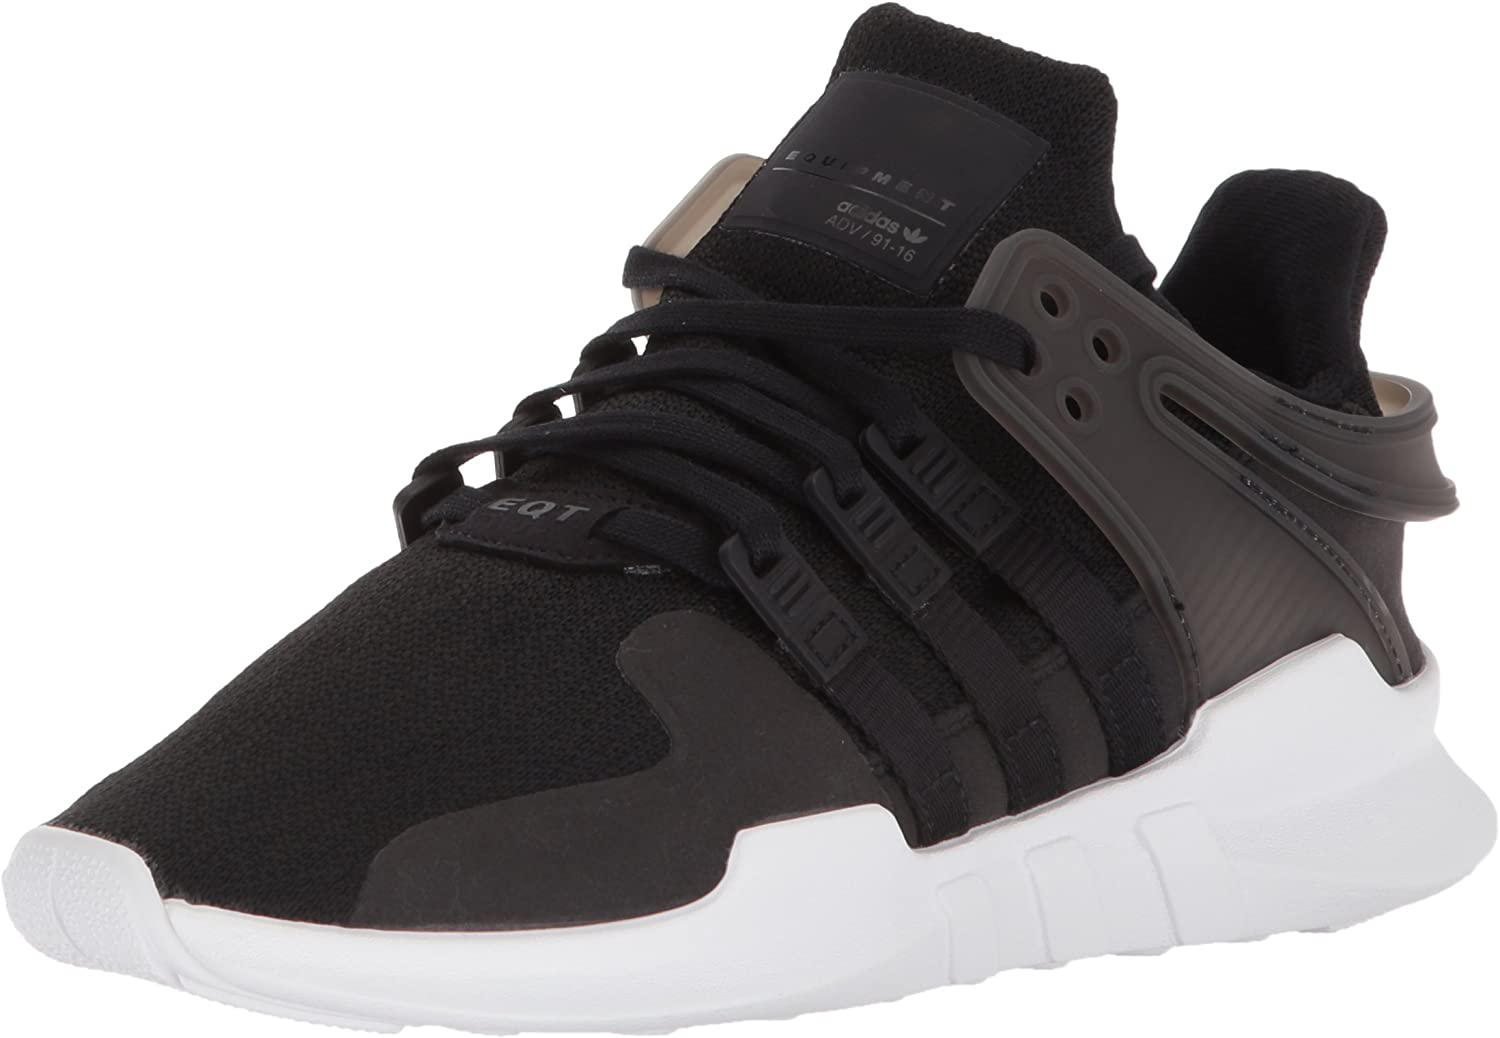 cf539025 Adidas Boys' EQT Support ADV J shoes, Black White, 6.5 M US Big Kid Running  Originals nnjpkd6446-Sporting goods